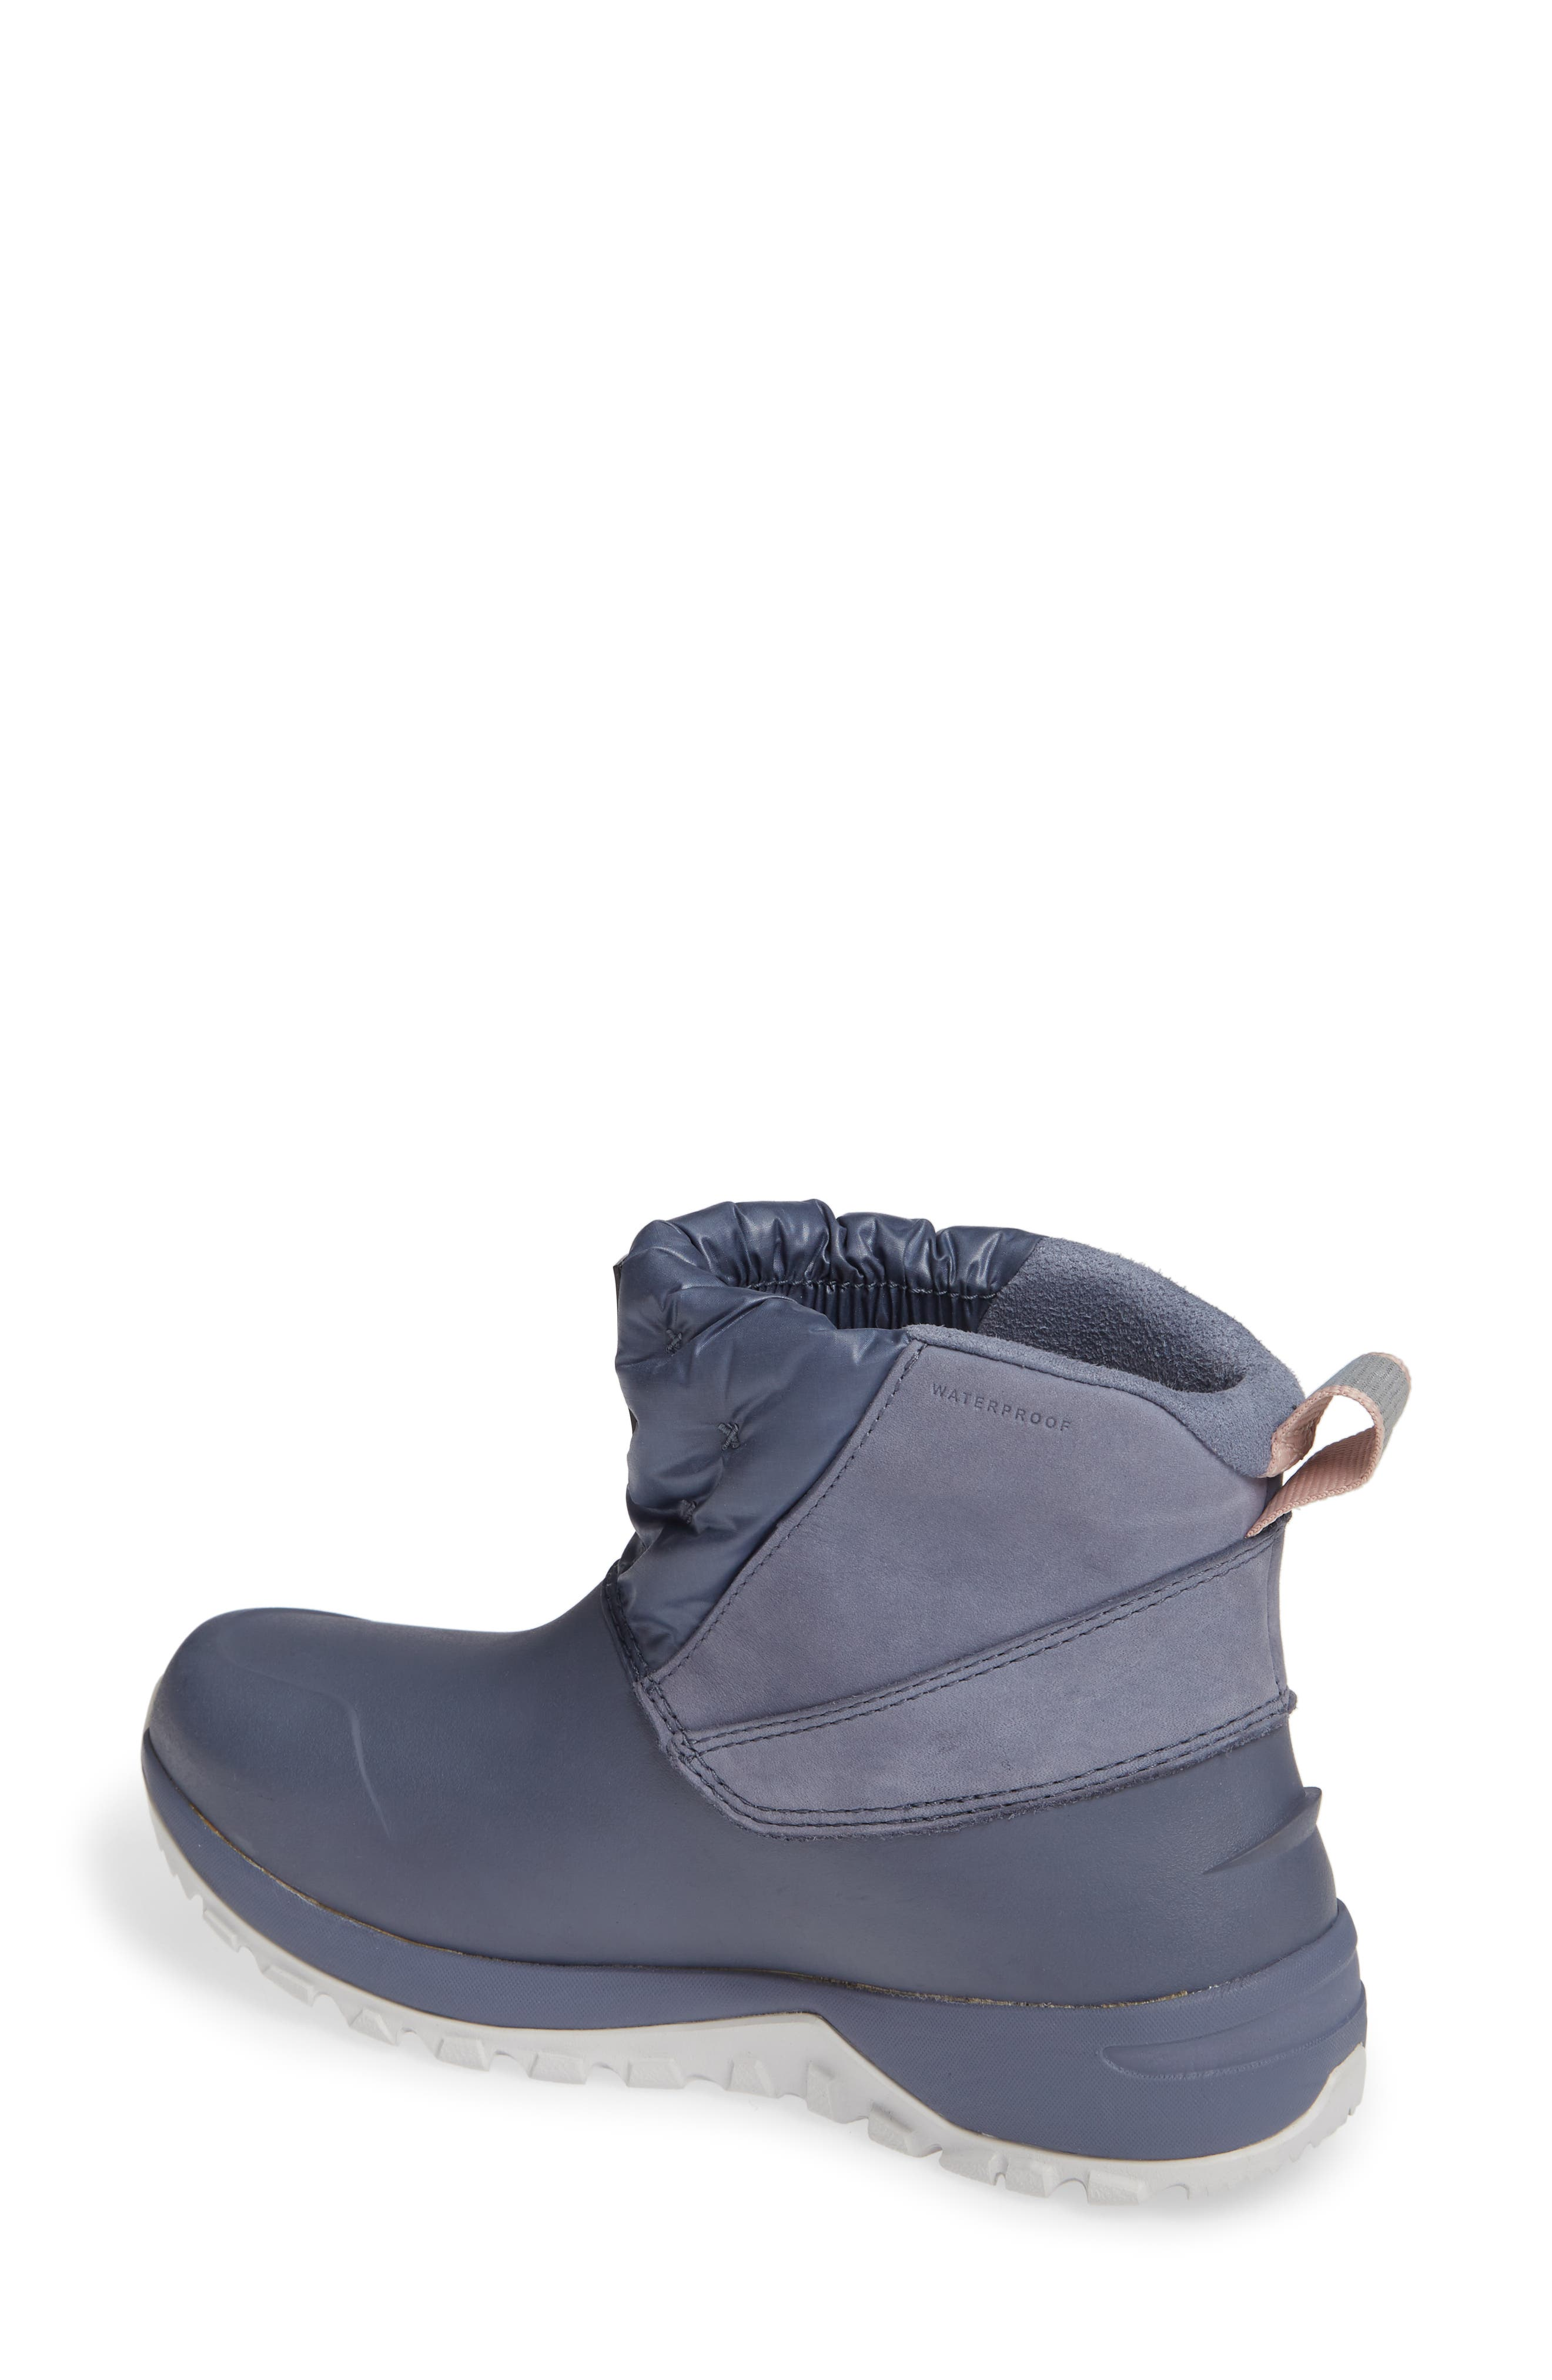 Yukiona Waterproof Ankle Boot,                             Alternate thumbnail 2, color,                             GRISAILLE GREY/ TIN GREY